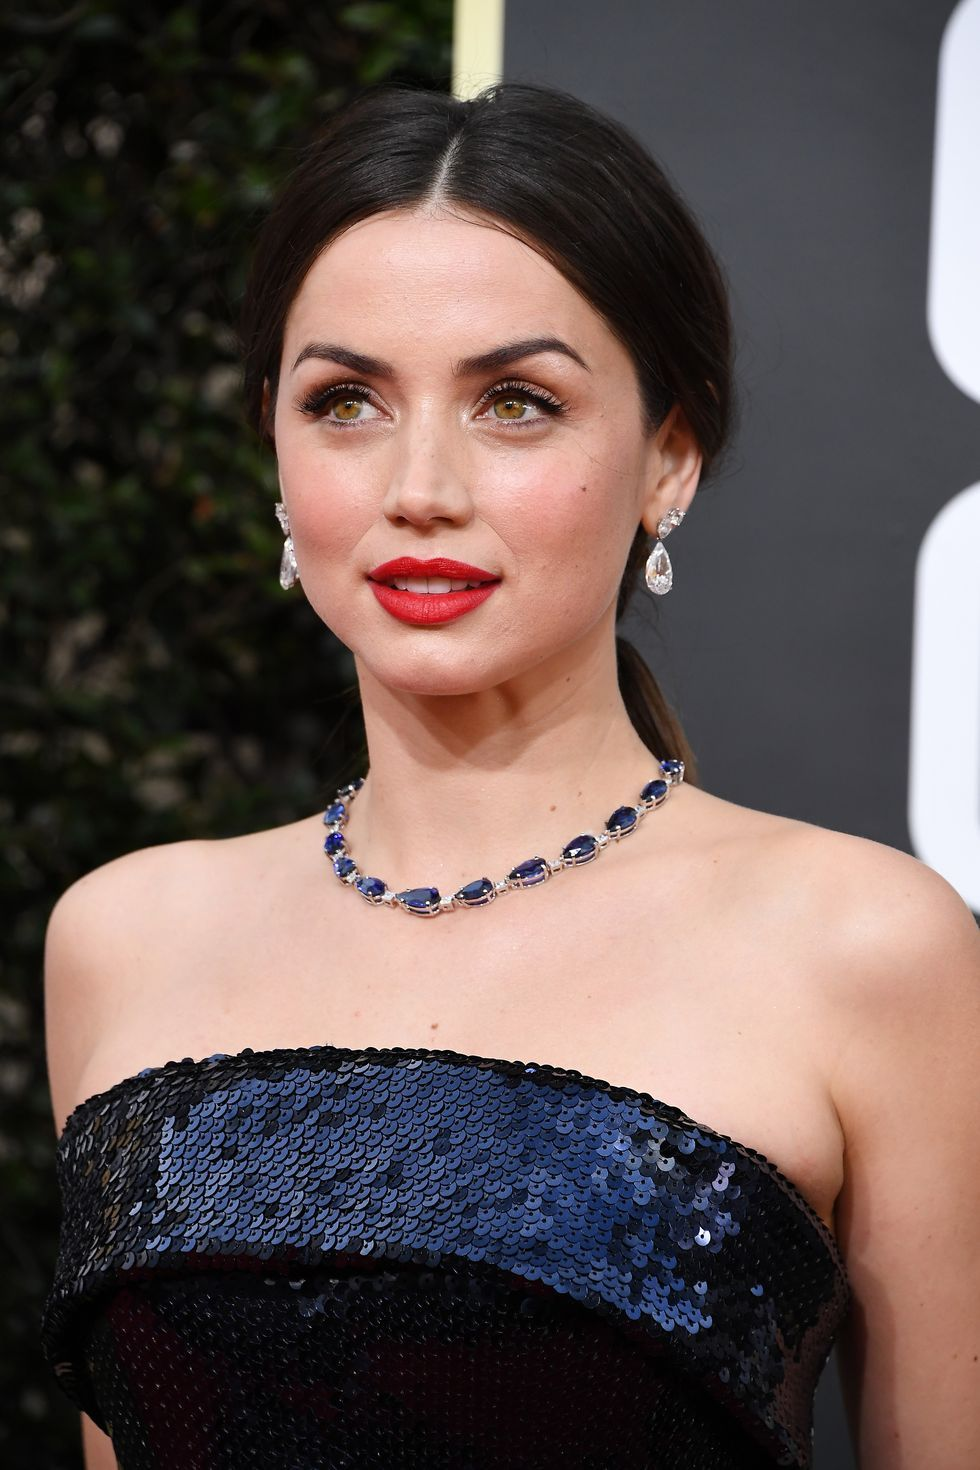 https://hips.hearstapps.com/hmg-prod.s3.amazonaws.com/images/ana-de-armas-attends-the-77th-annual-golden-globe-awards-at-news-photo-1578269061.jpg?crop=1xw%3A1xh%3Bcenter%2Ctop&resize=980%3A%2A